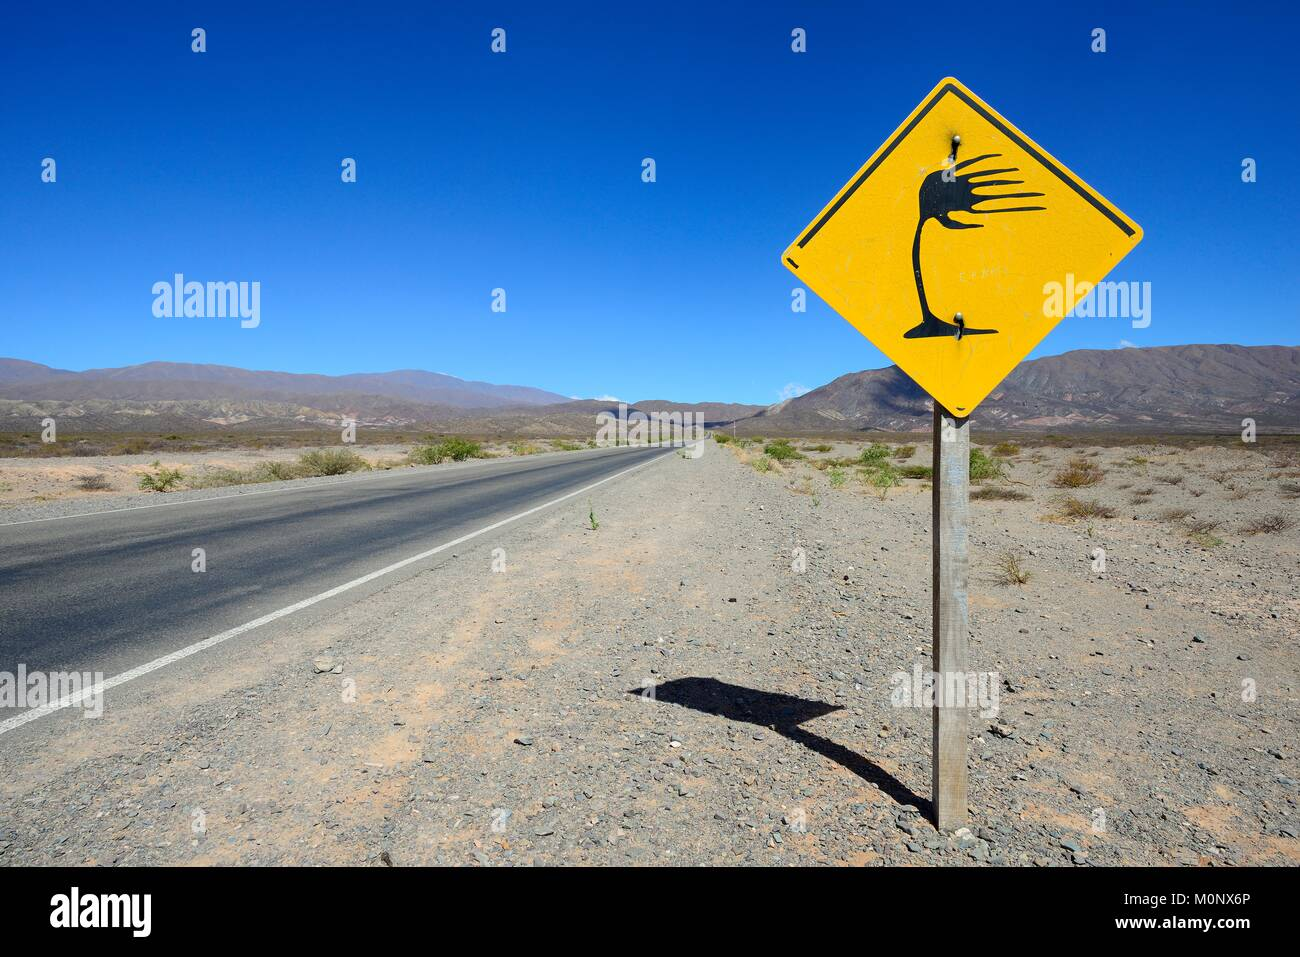 Warning sign crosswind at RP 33,near Cachi,Salta,Argentina - Stock Image